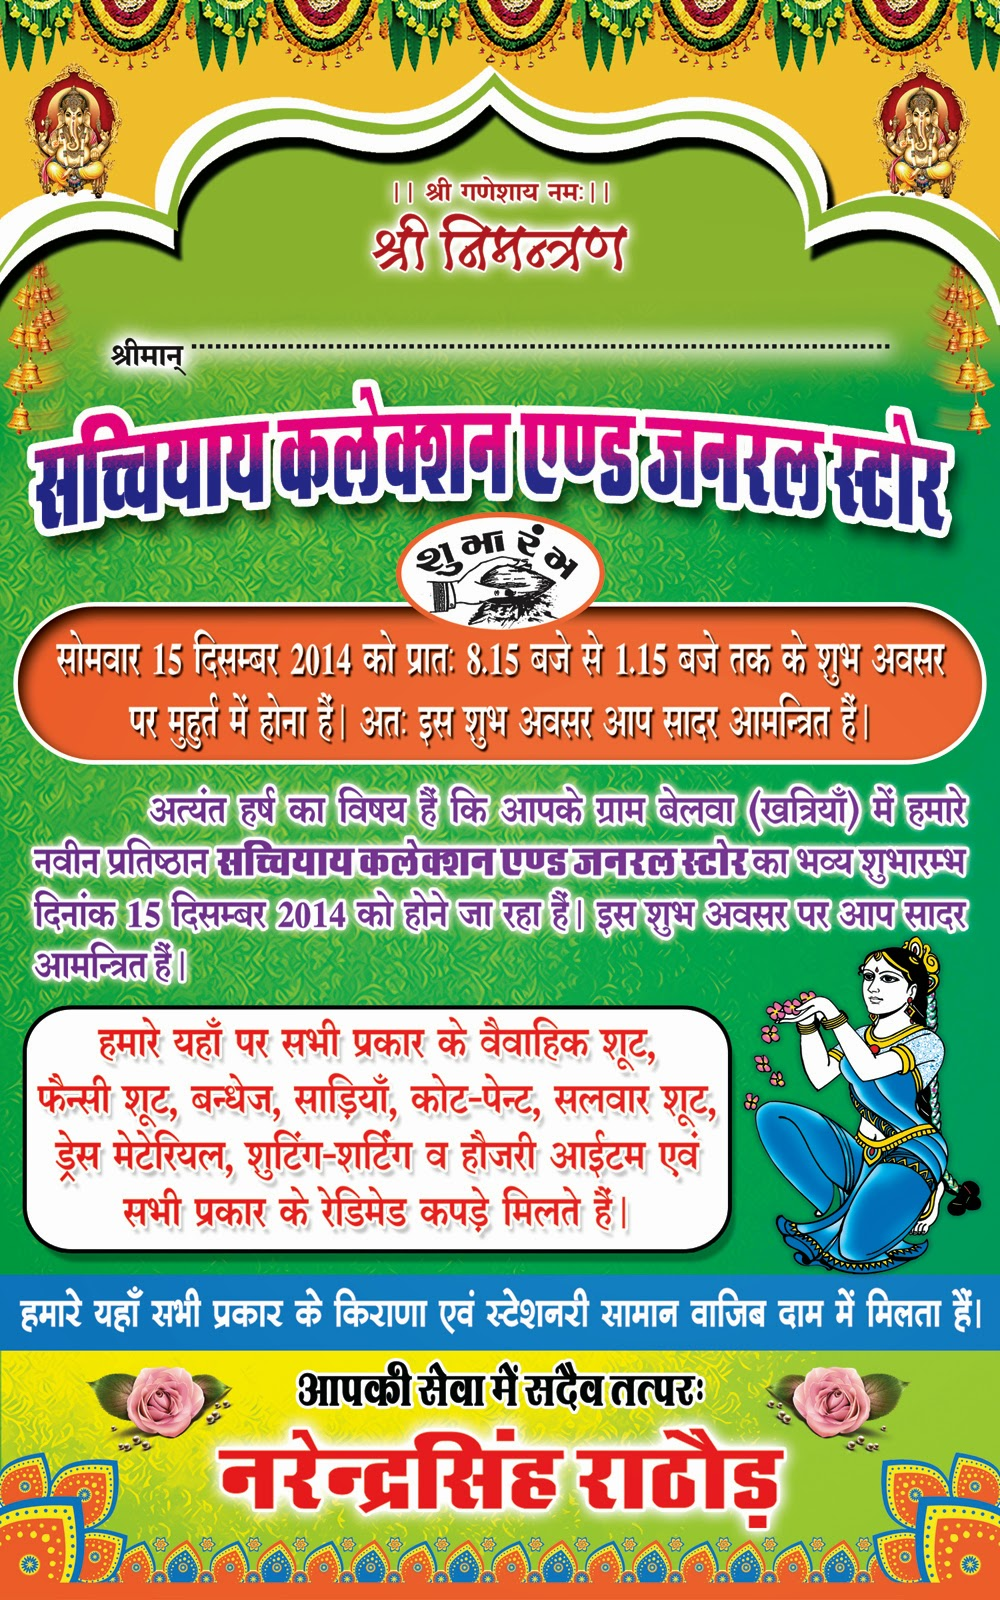 Shop Opening Invitation Hindi Vaca